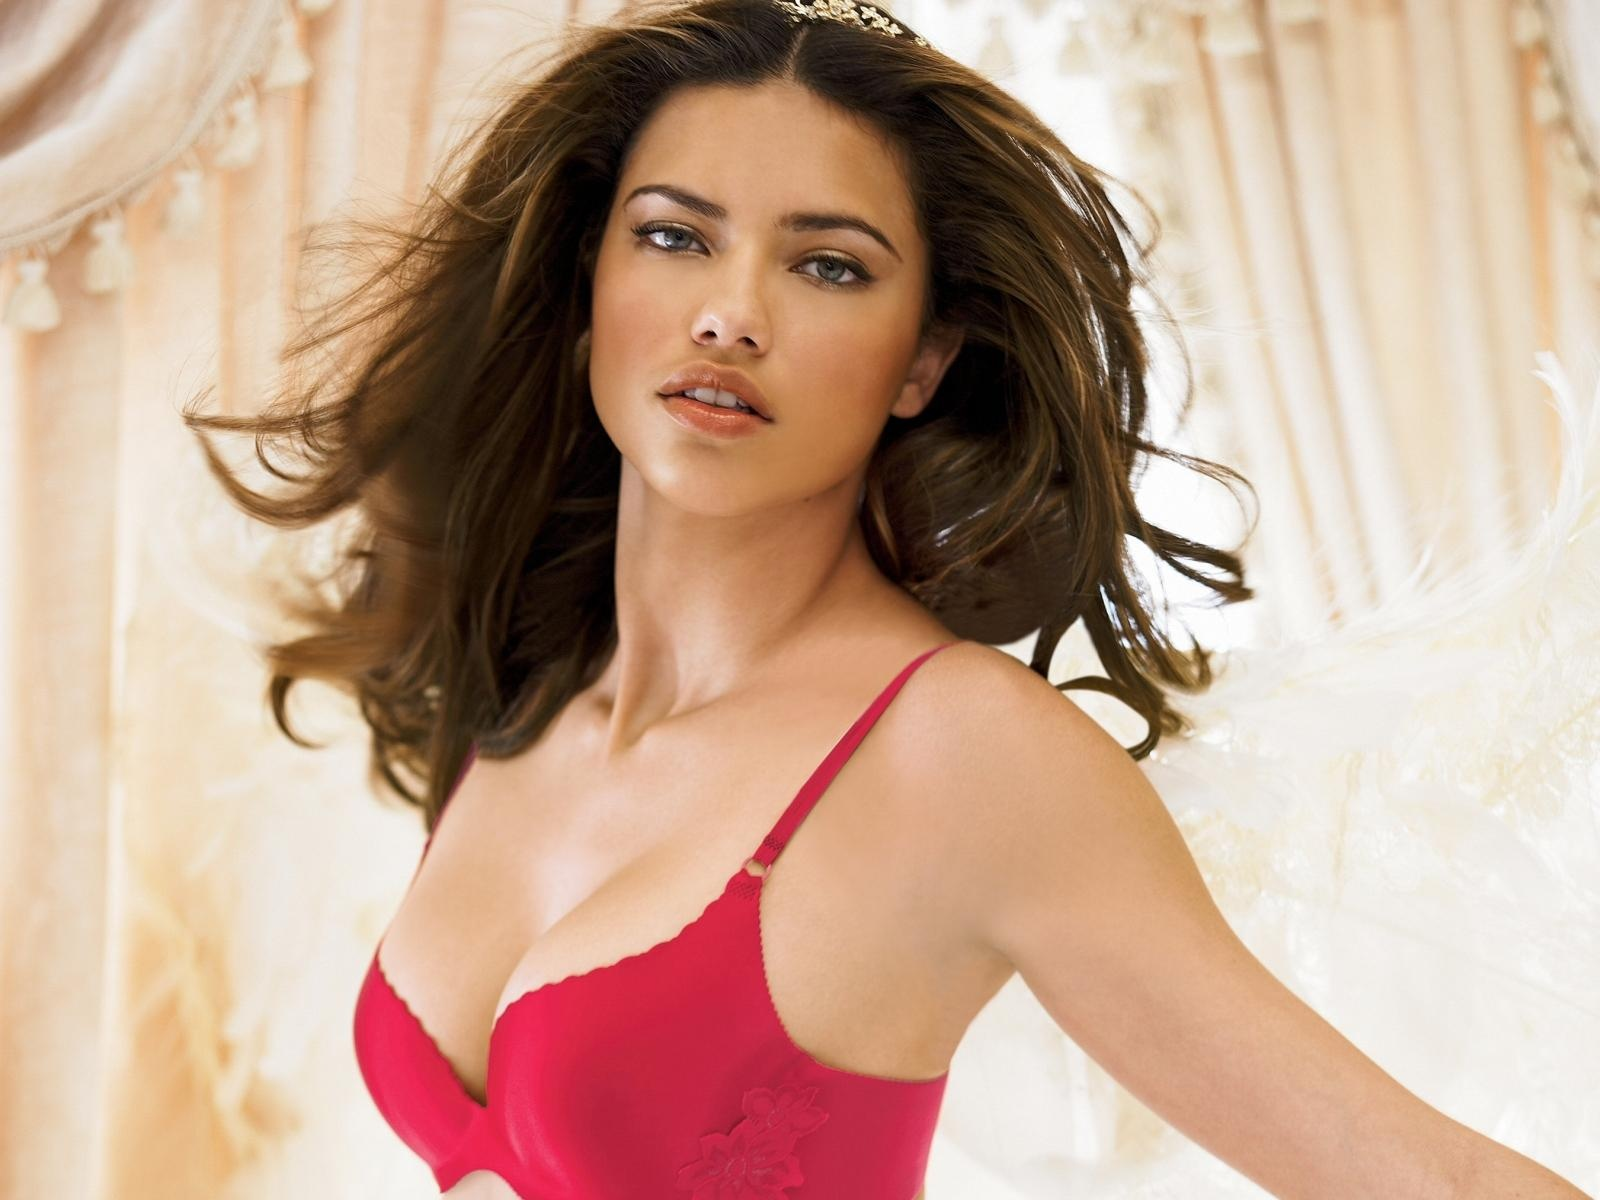 Adriana With Red Top